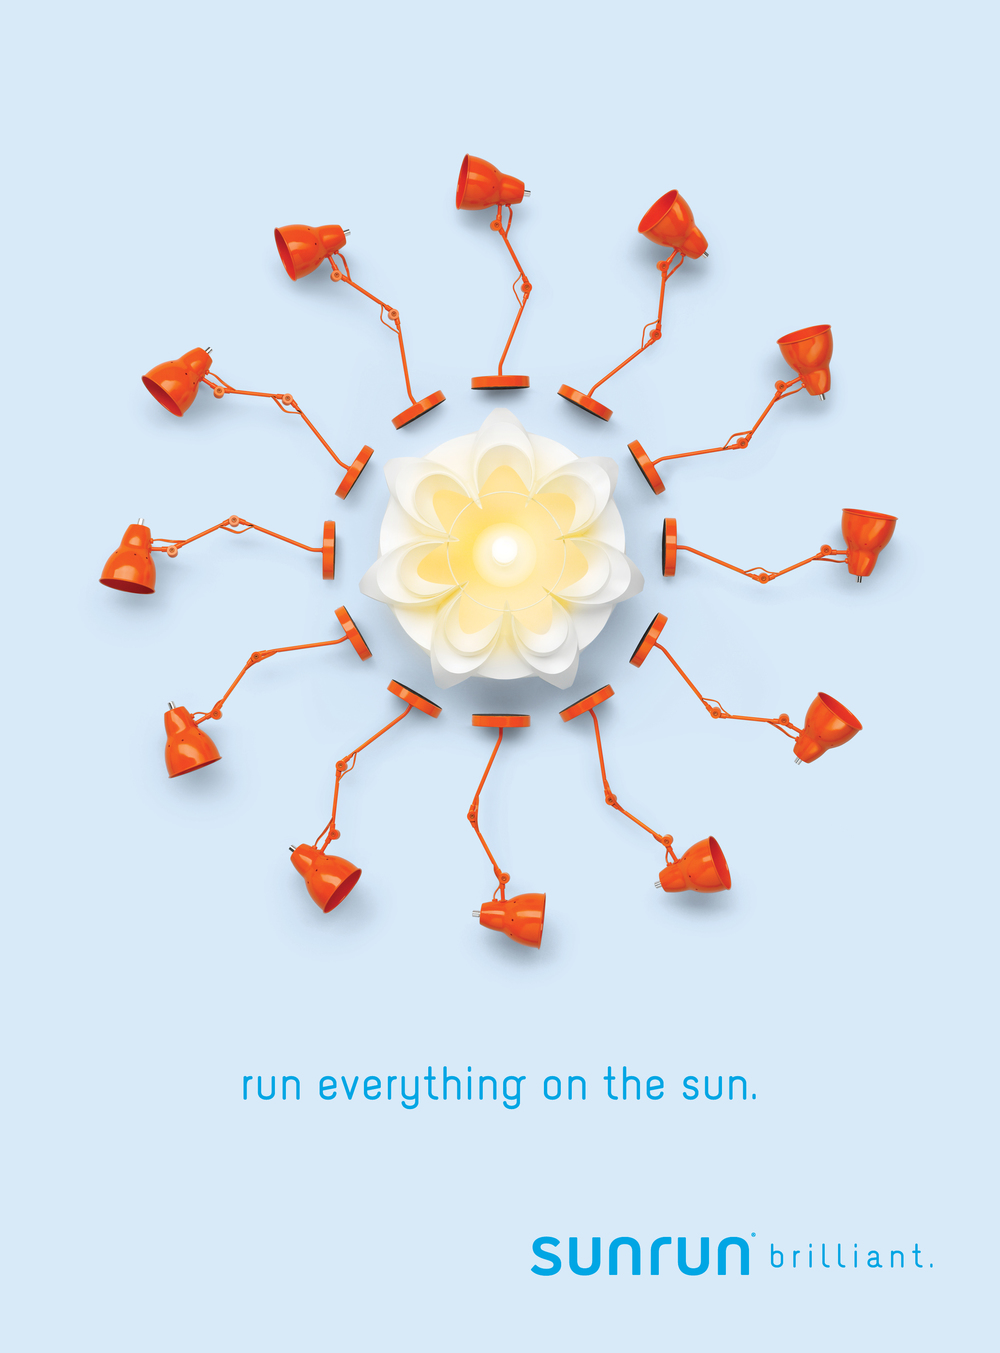 Sunrun-Brilliant-Eun-Everything-On-the-Sun-Lamps